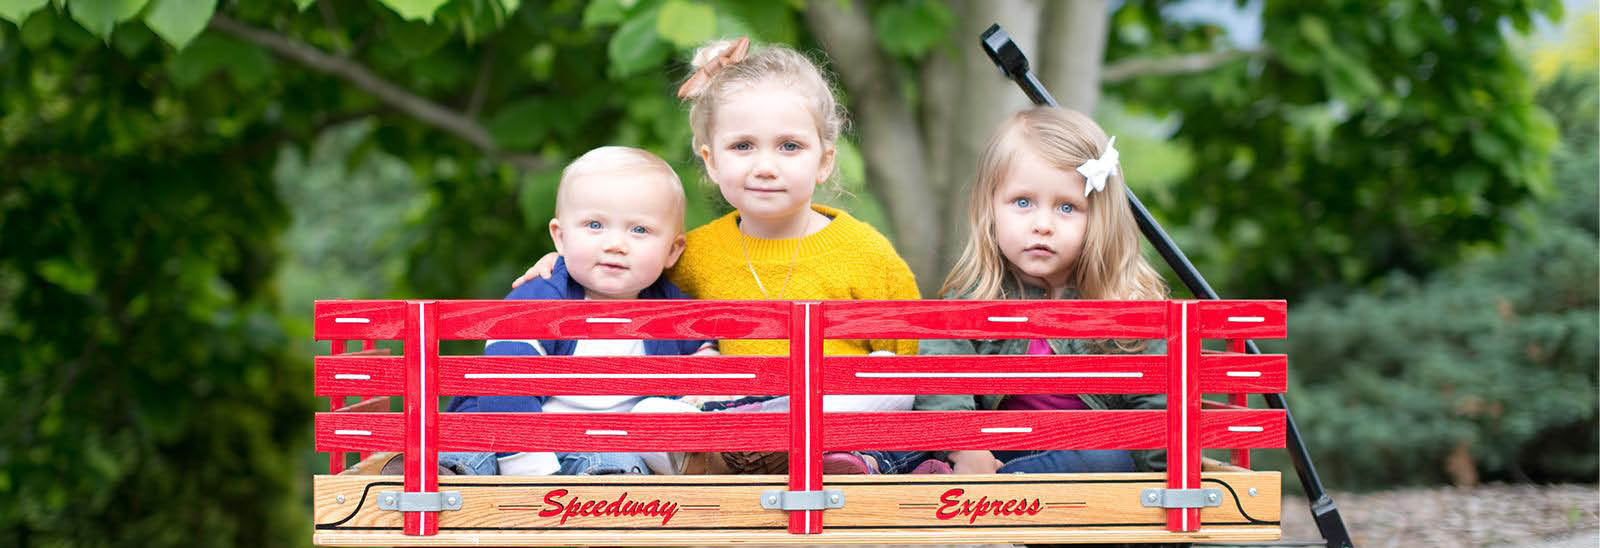 kids in wagon reruns for weeones west chester ohio